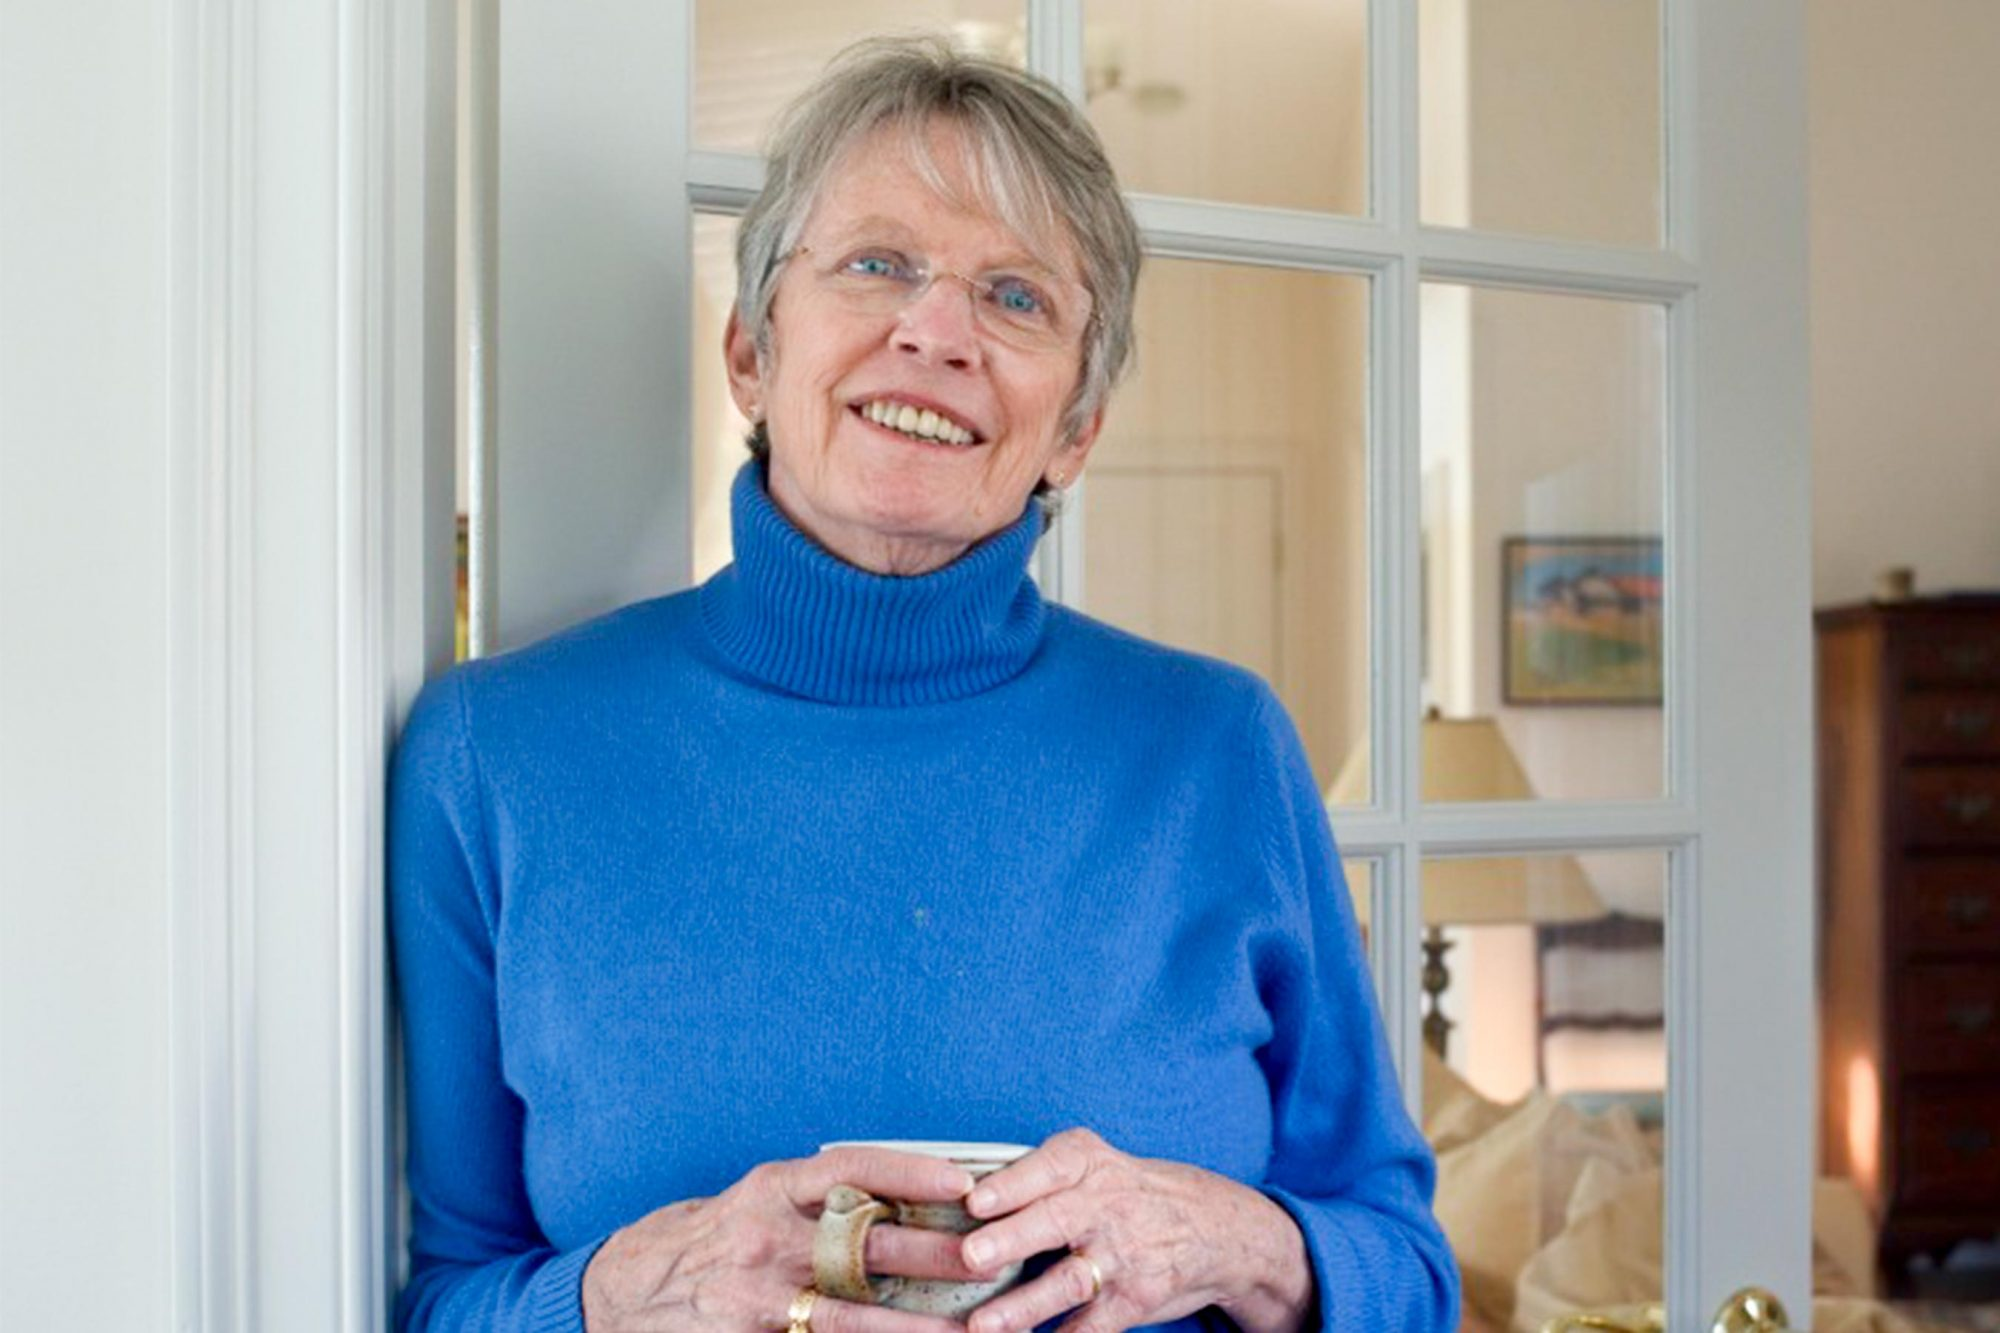 Lois Lowry author photo CR: Rania Matar